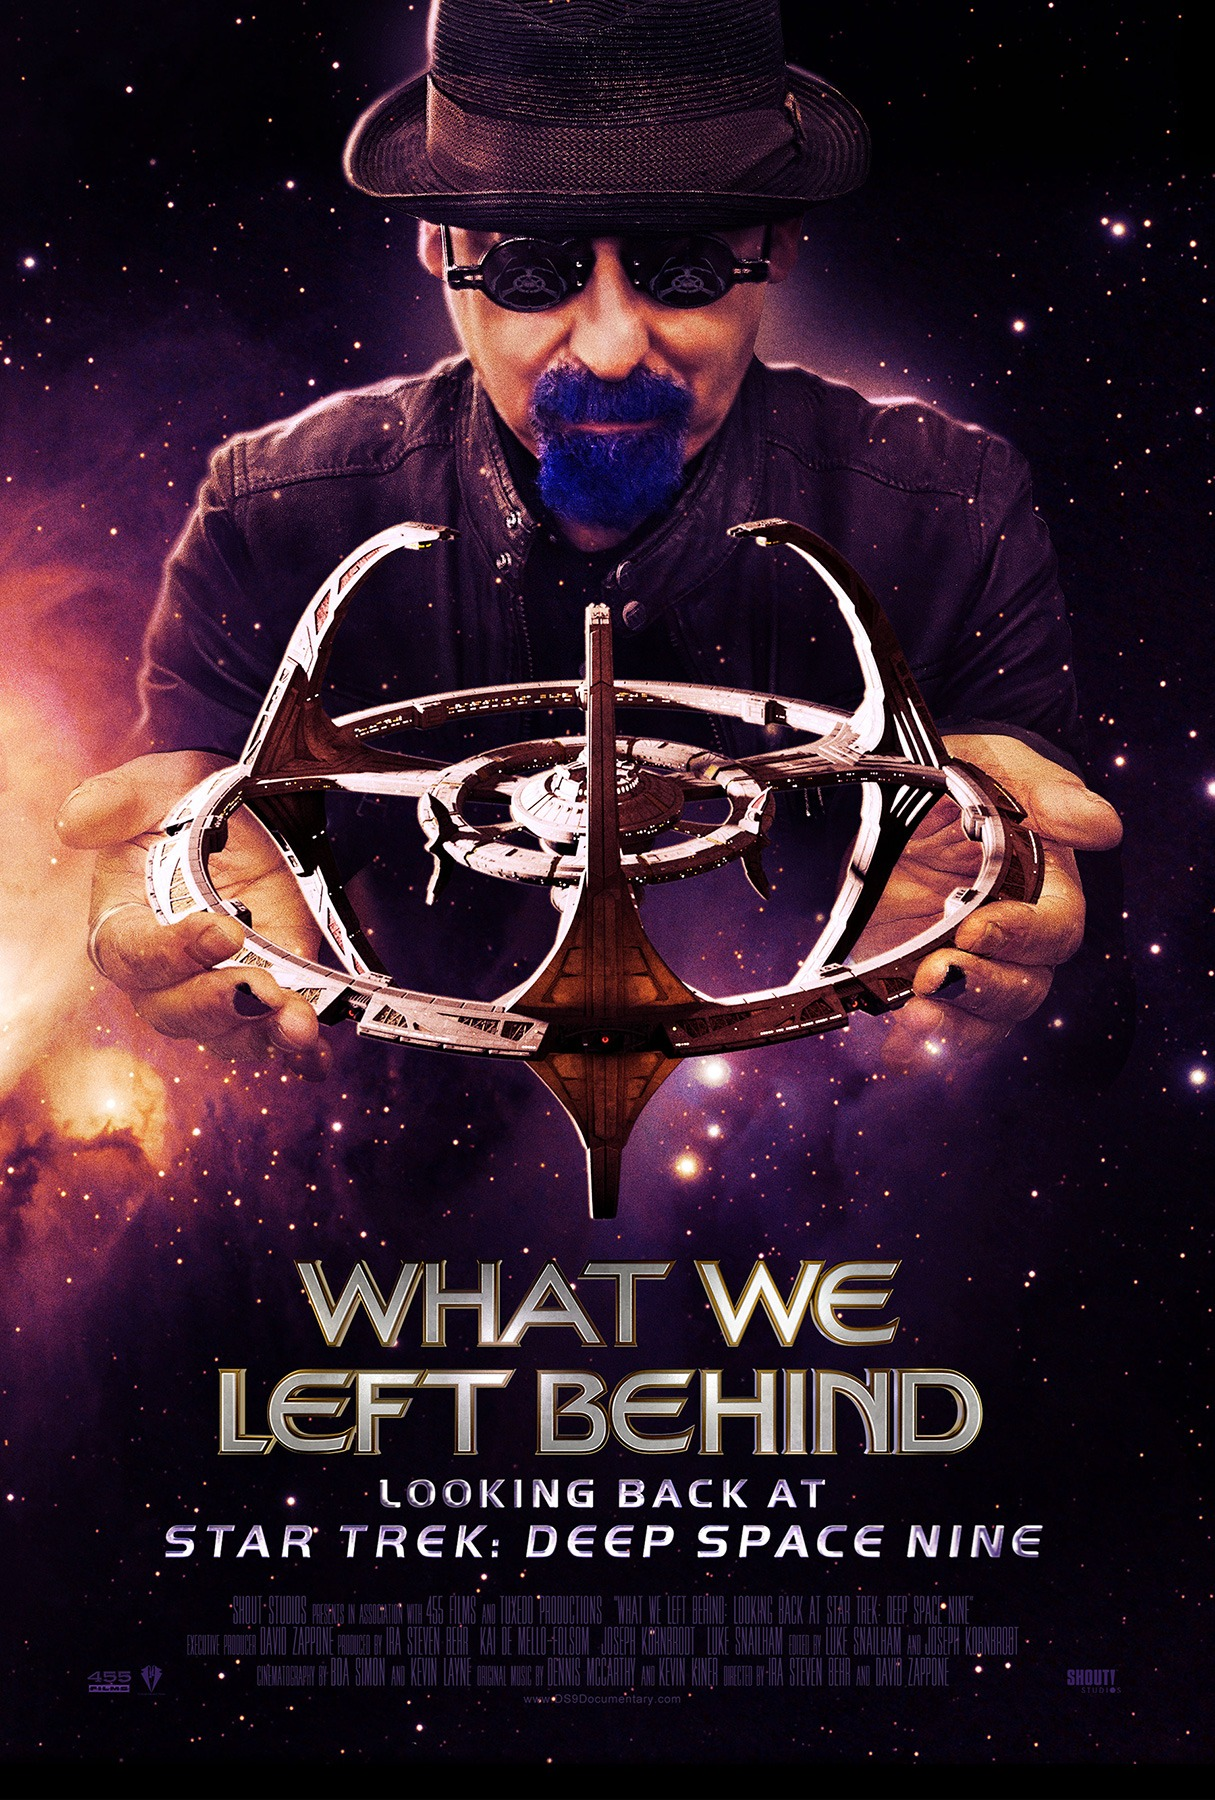 STAR TREK: DEEP SPACE NINE DOCUMENTARY WHAT WE LEFT BEHIND - TRAILER, POSTER AND RELEASE DATE REVEALED